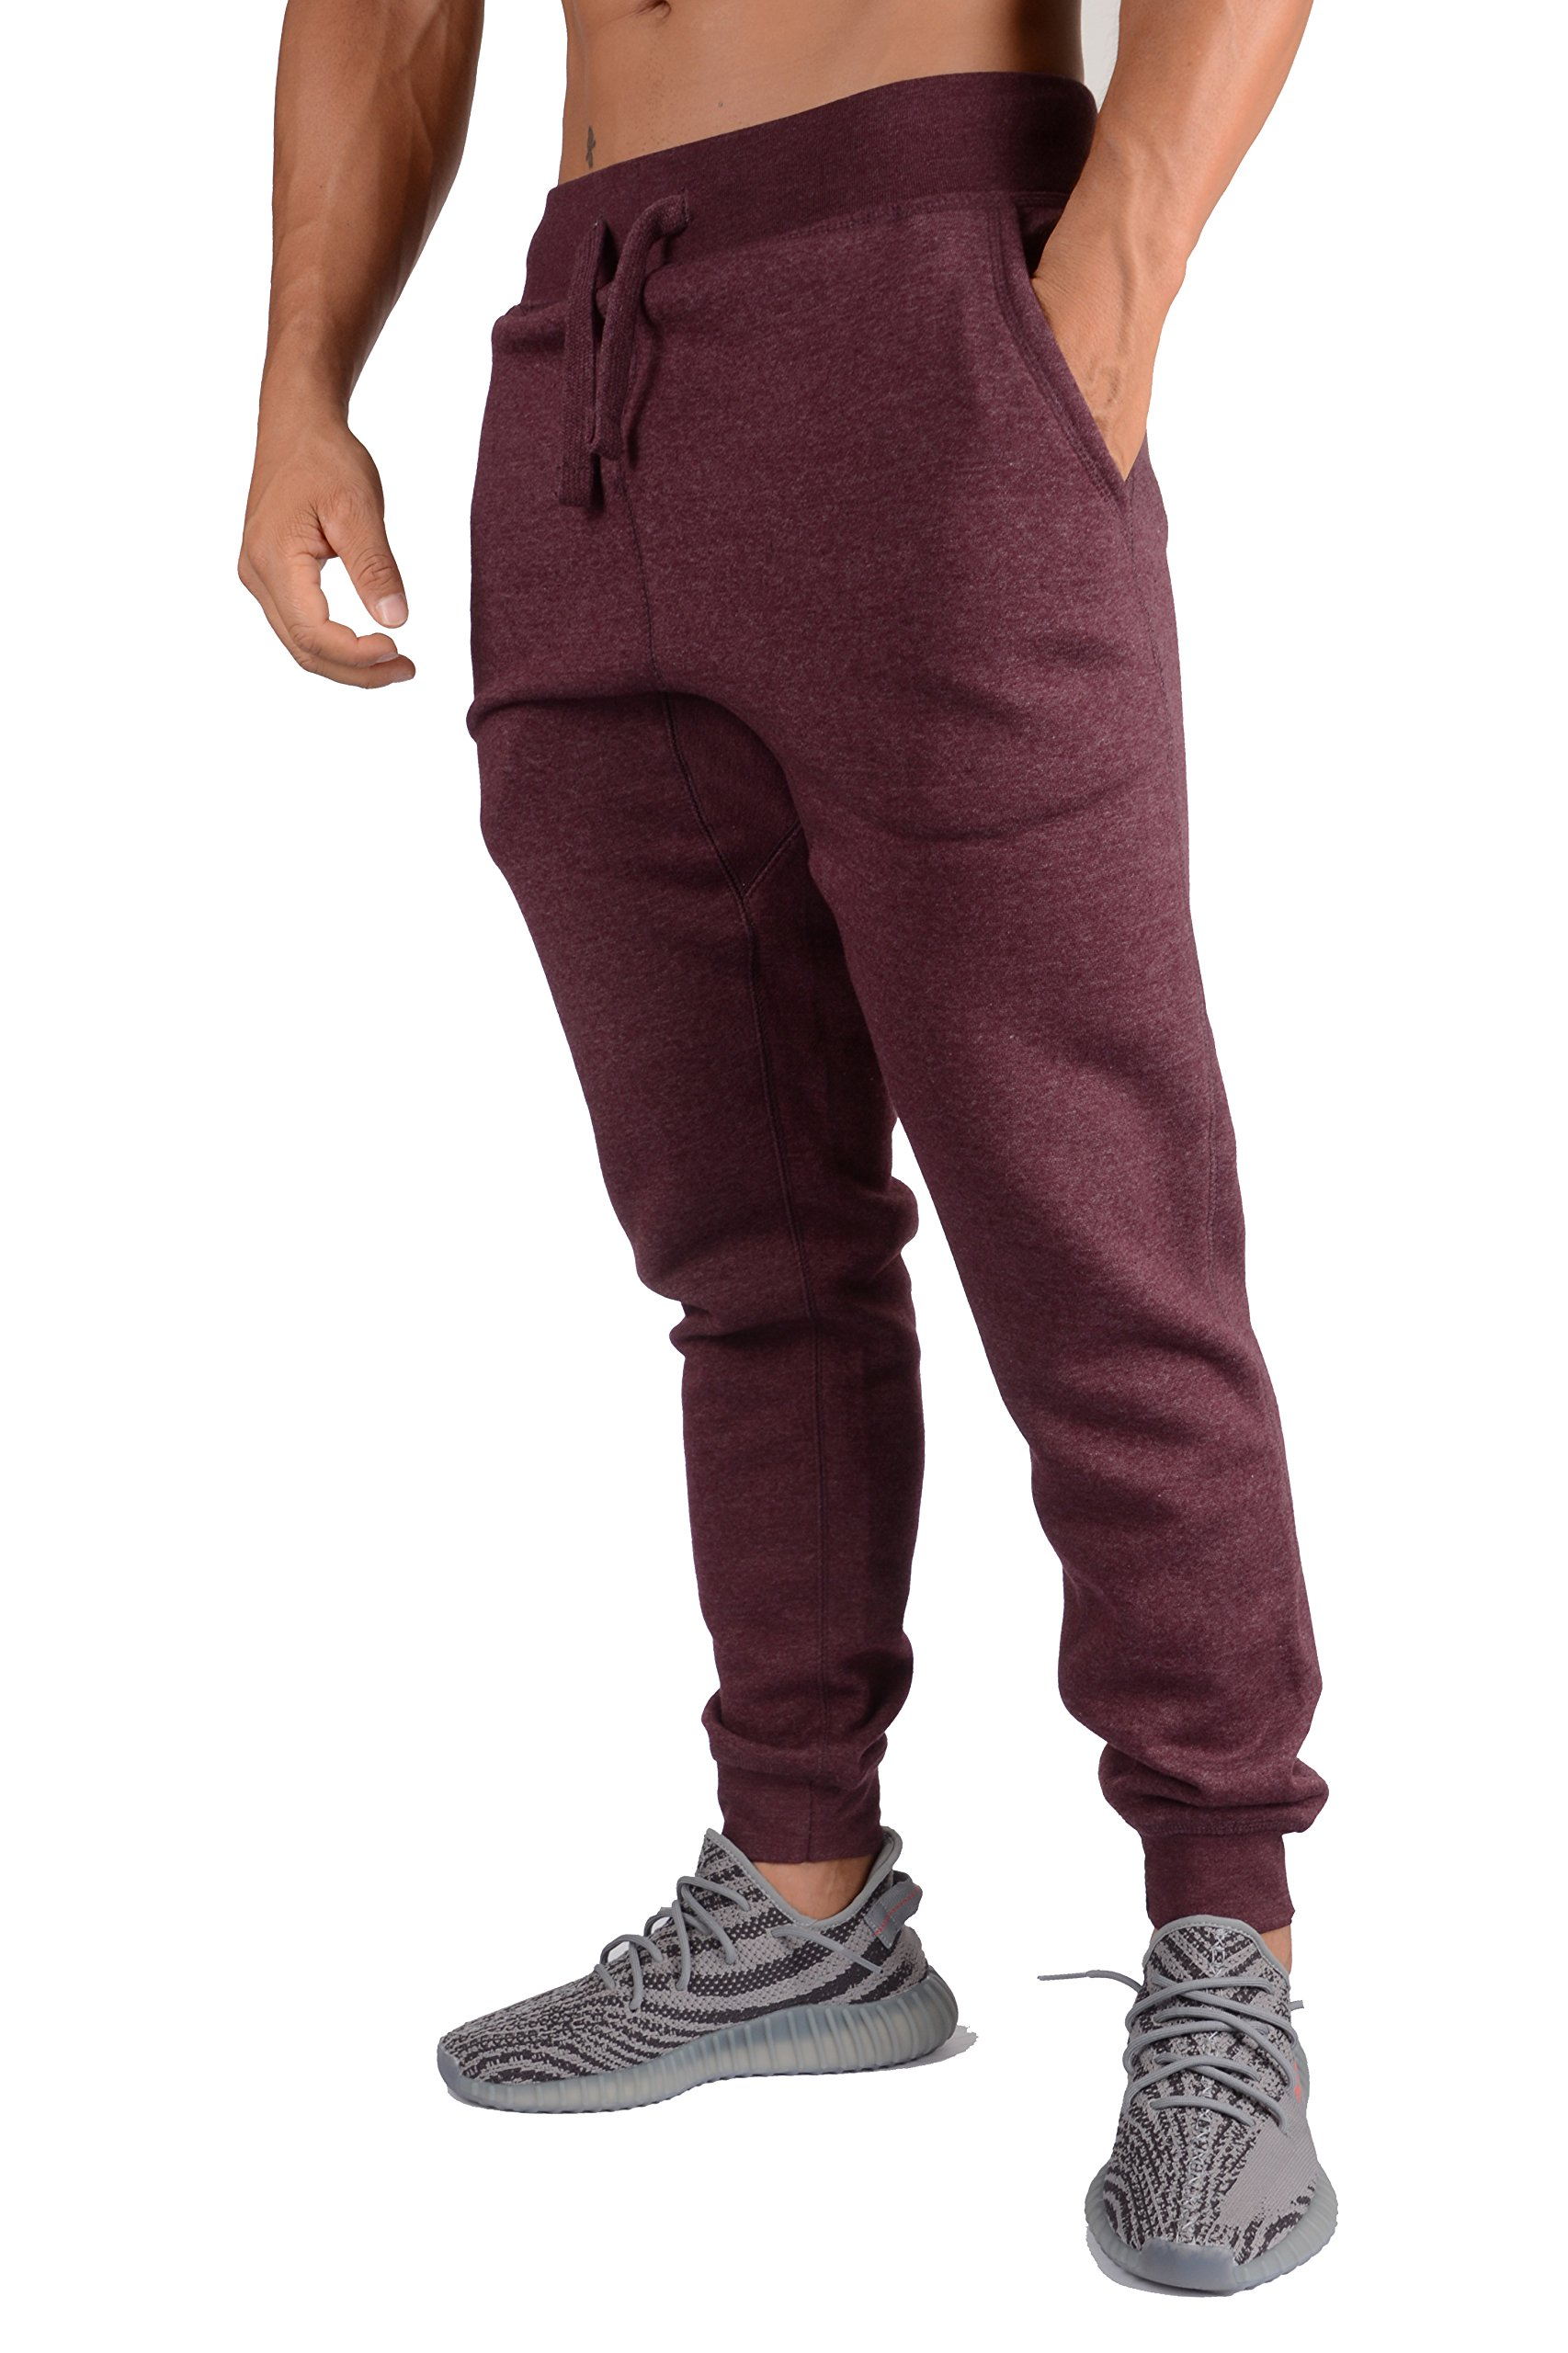 YoungLA Mens Slim Fit Joggers Fitness Activewear Sports Fleece Sweatpants for Gym Training Burgundy Heather Small by YoungLA (Image #3)